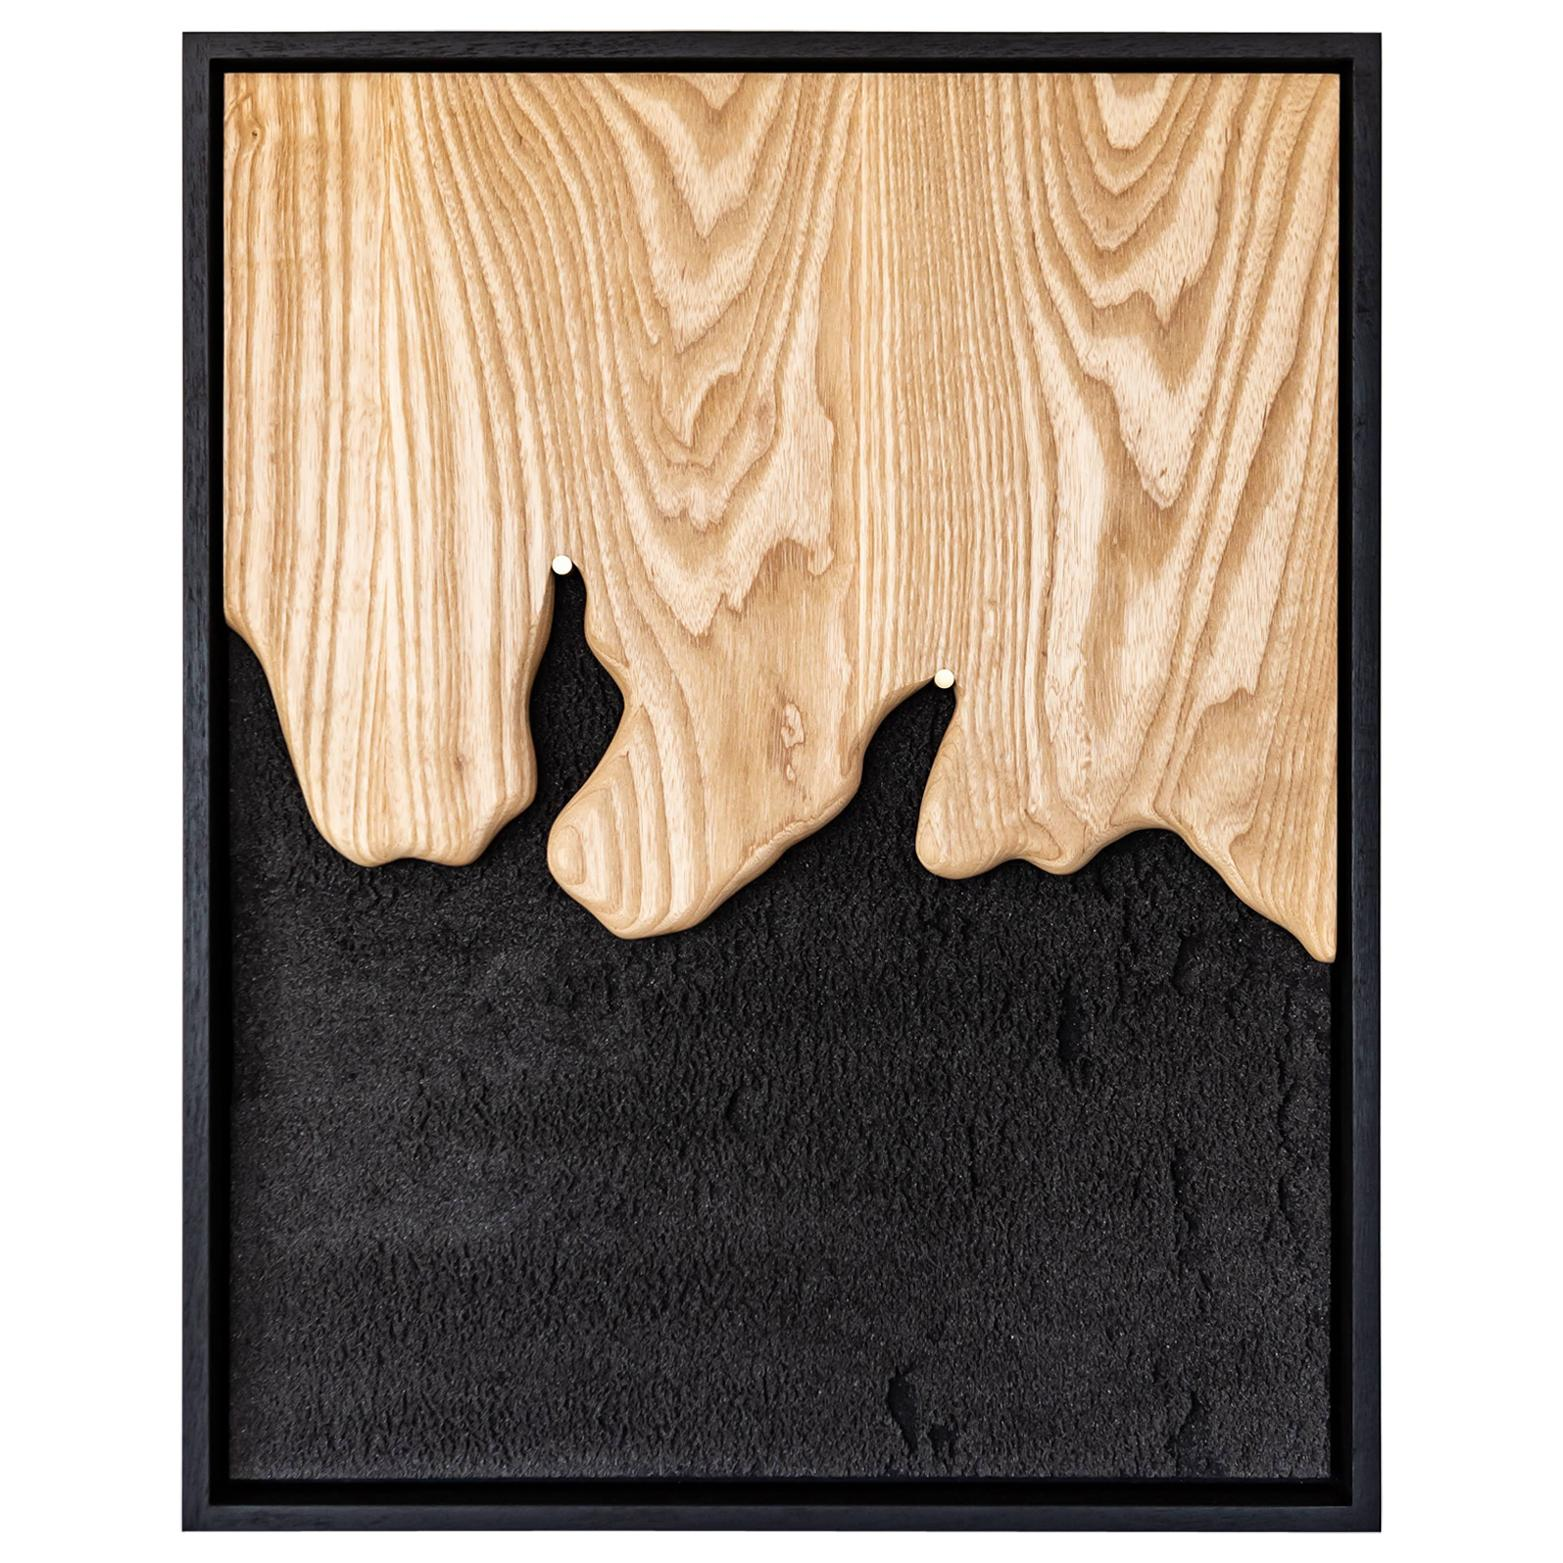 Amar #1 Contemporary Wall Sculpture by Marcos Amato, One of a Kind 1/1